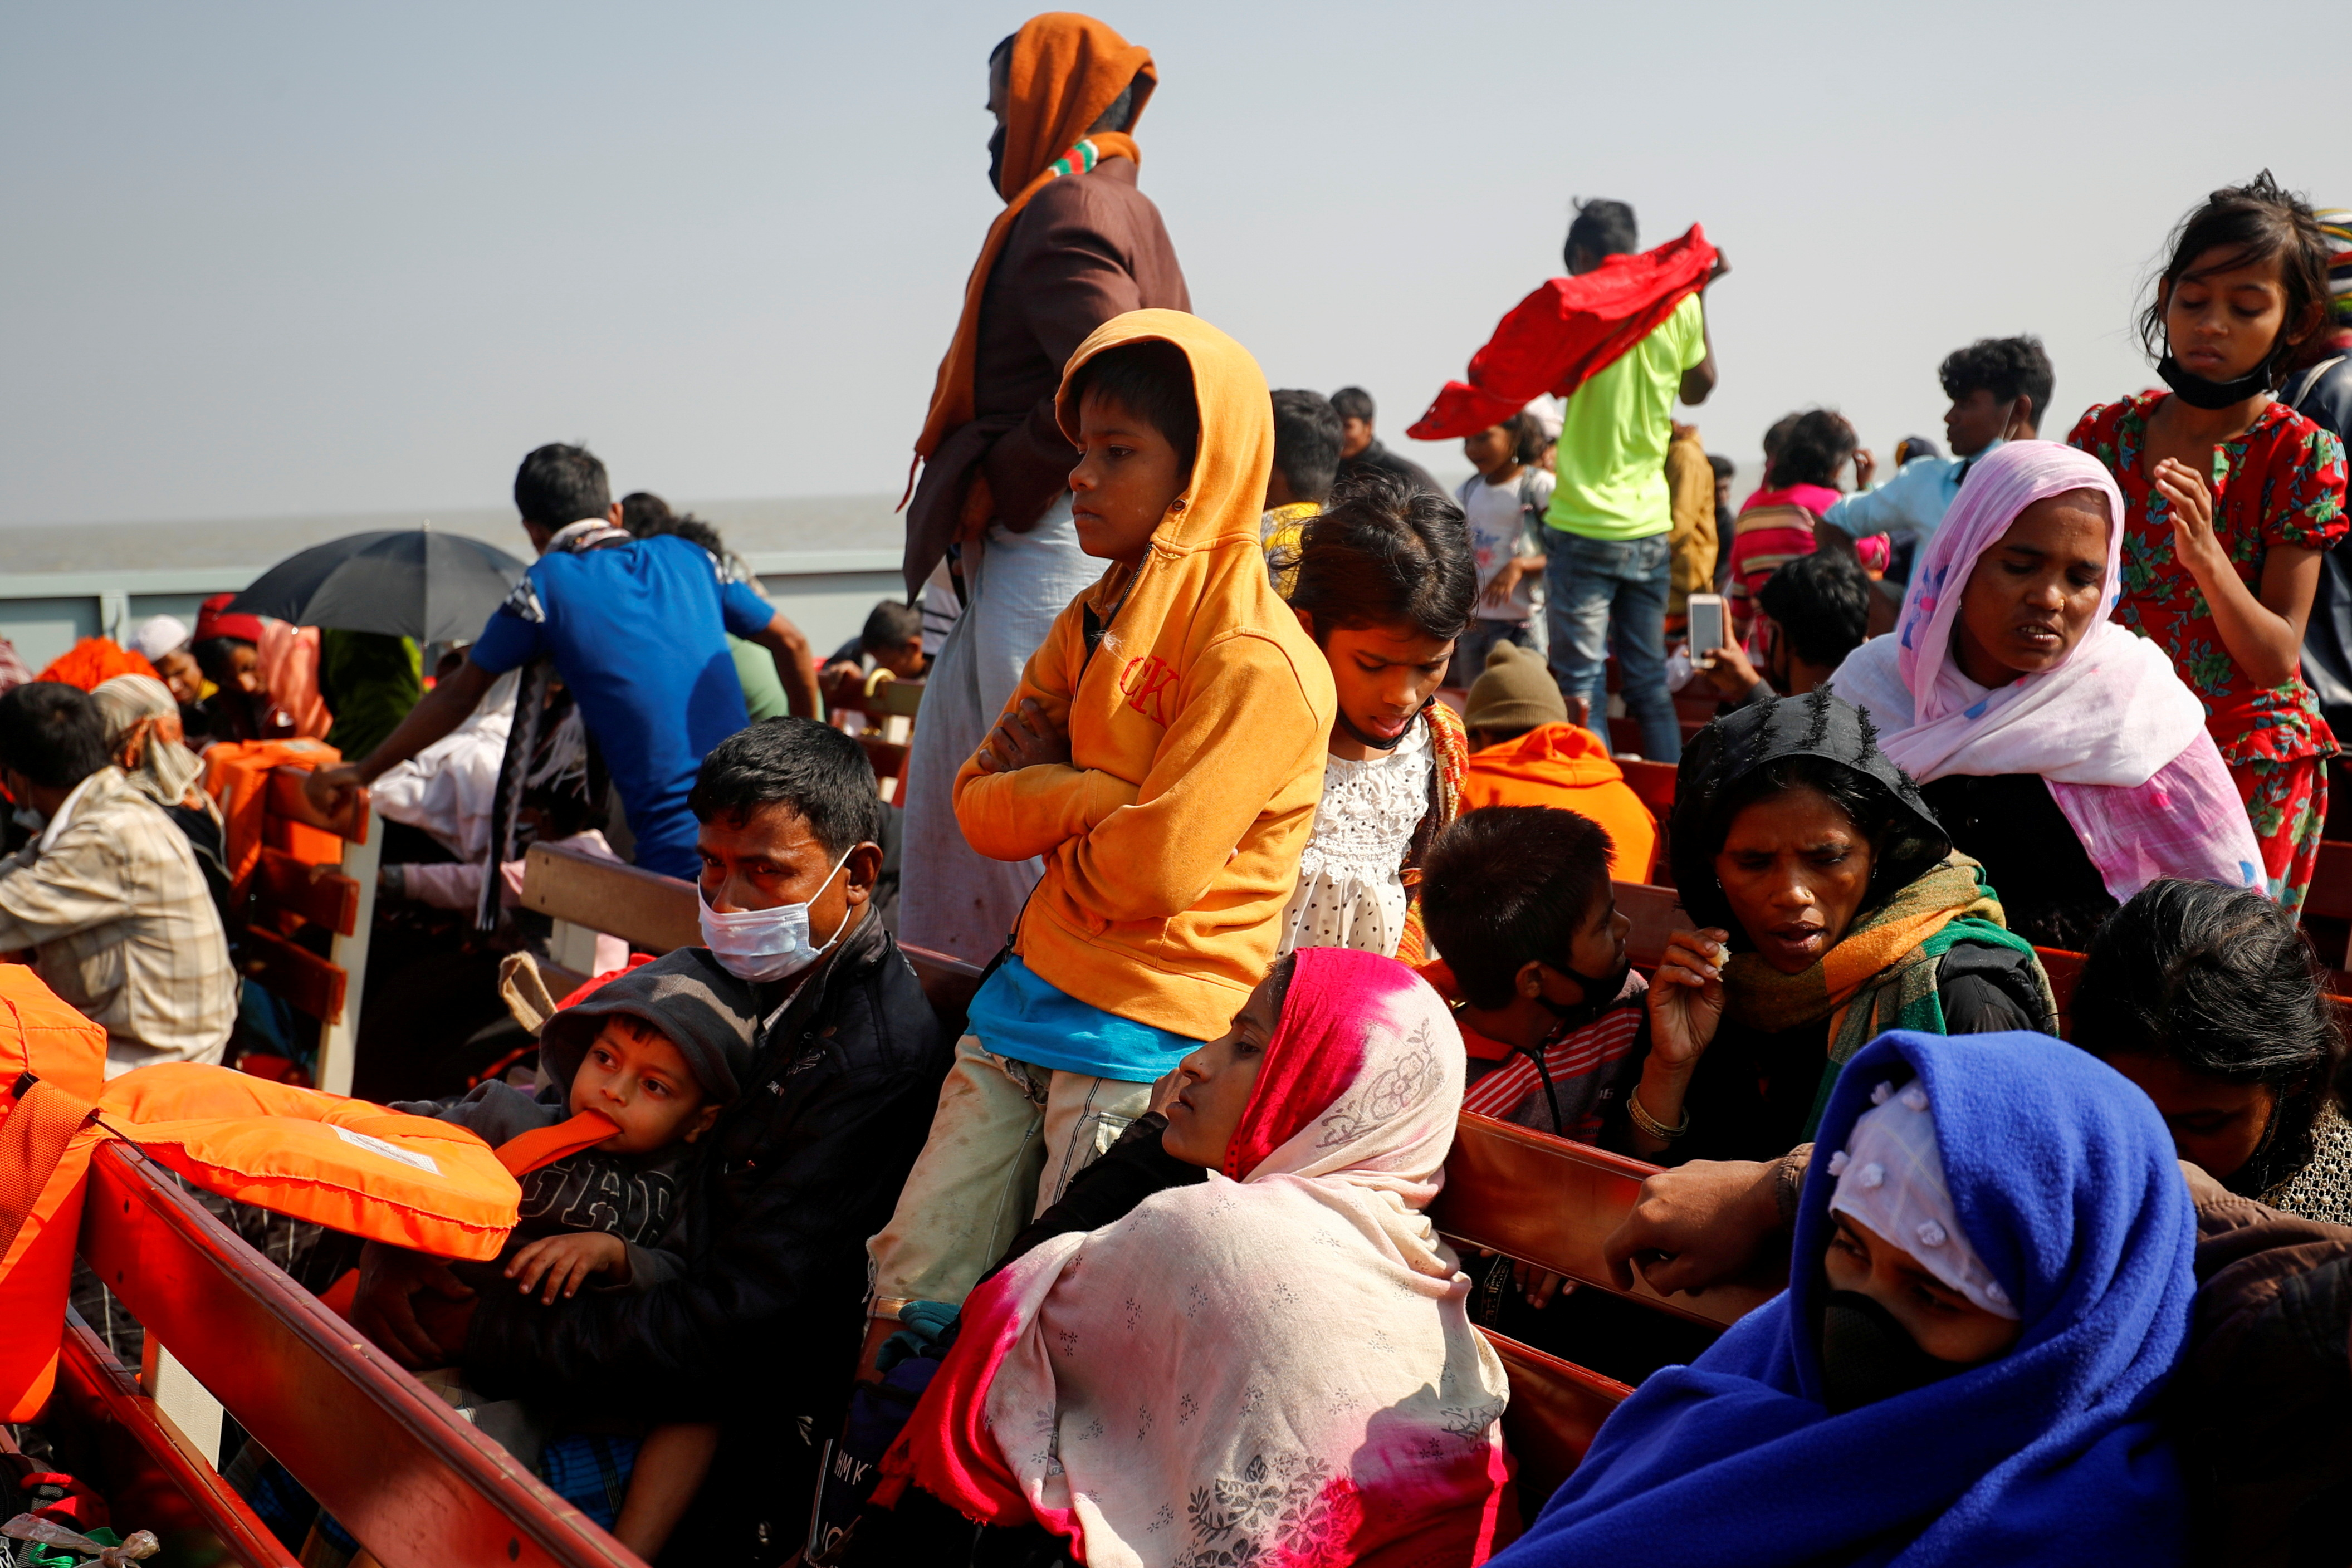 Rohingya refugees sit on wooden benches of a navy vessel on their way to the Bhasan Char island in Noakhali district, Bangladesh, December 29, 2020. REUTERS/Mohammad Ponir Hossain/File Photo/File Photo